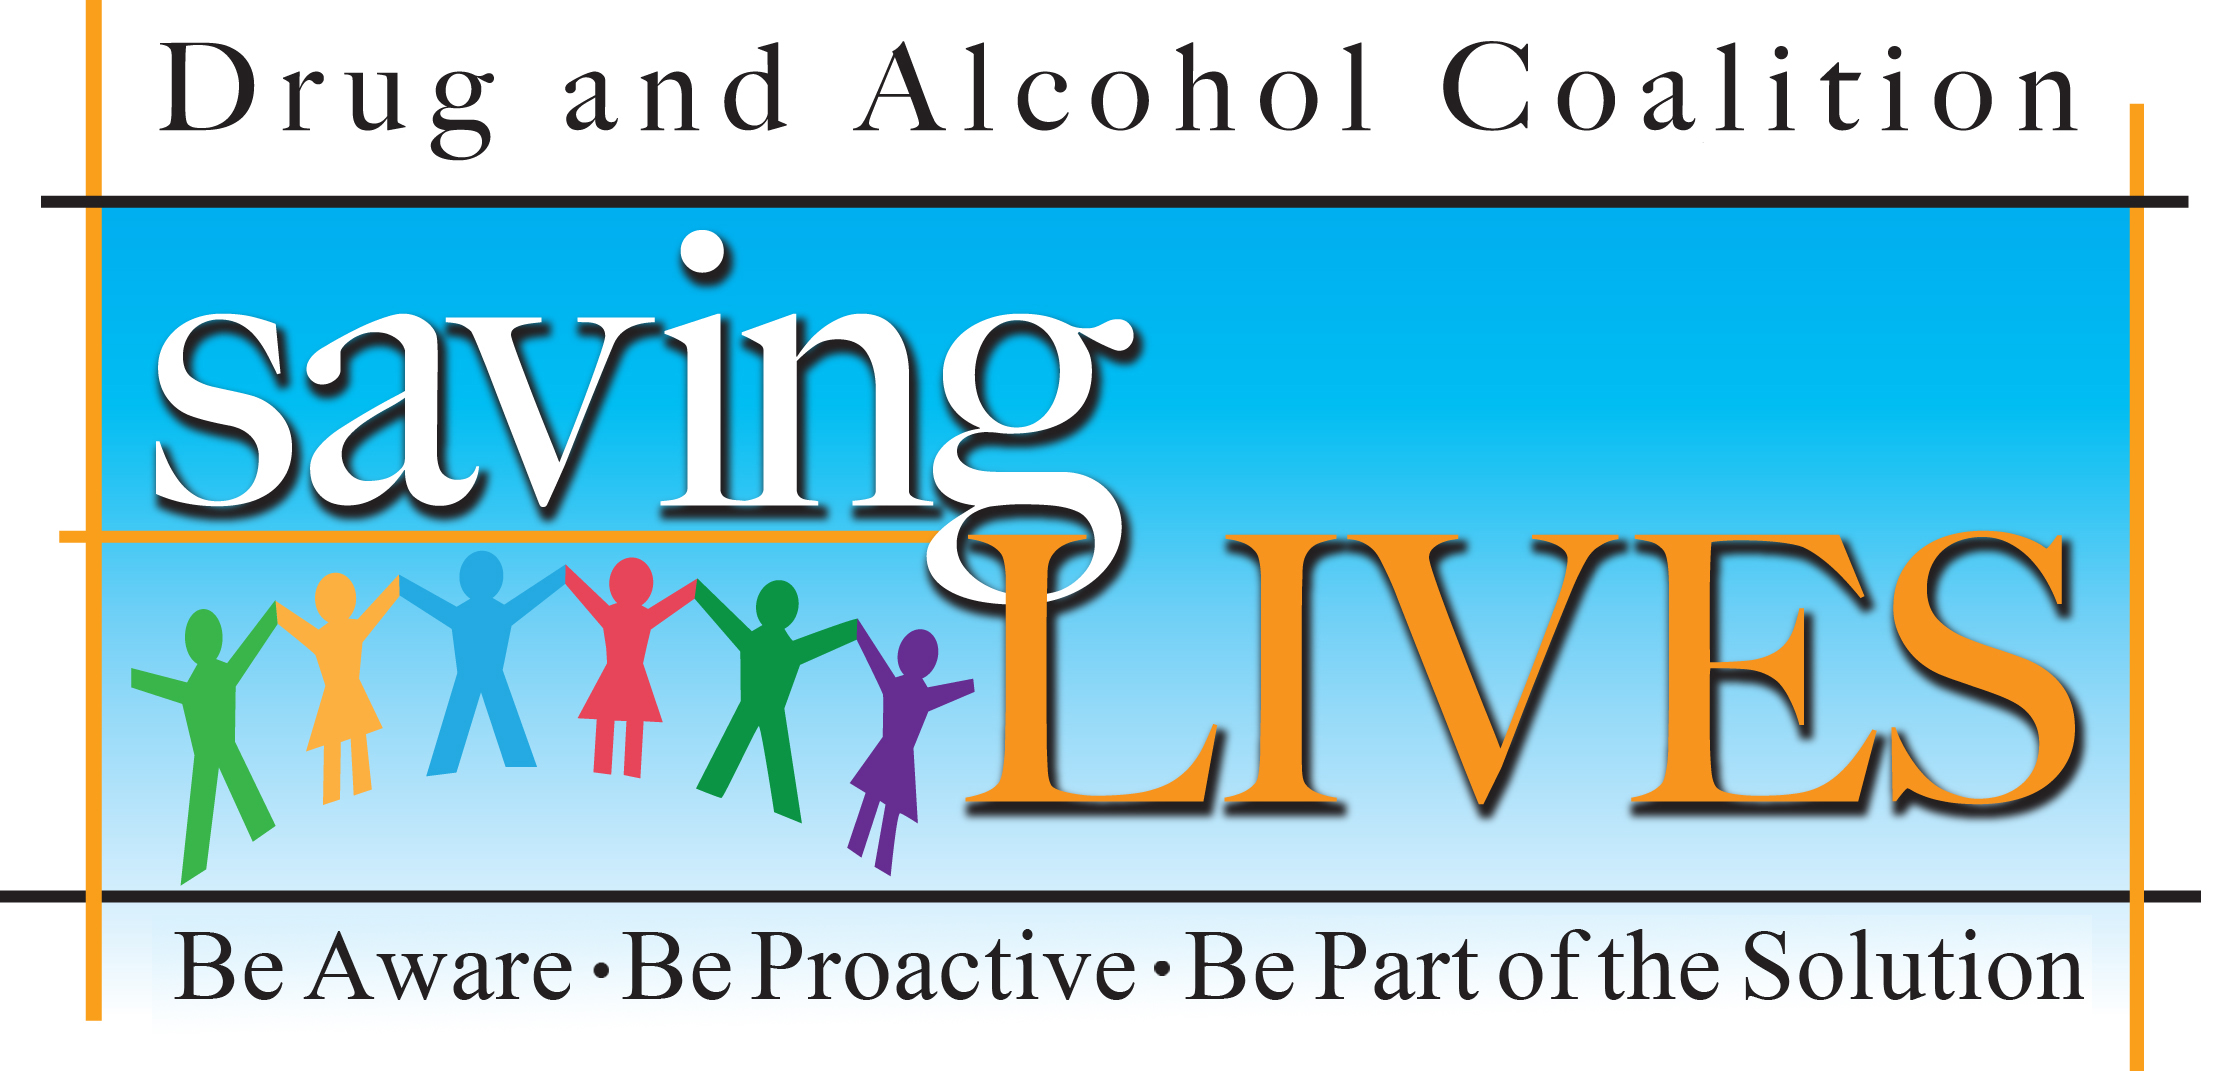 The Saving Lives Drug and Alcohol Coalition